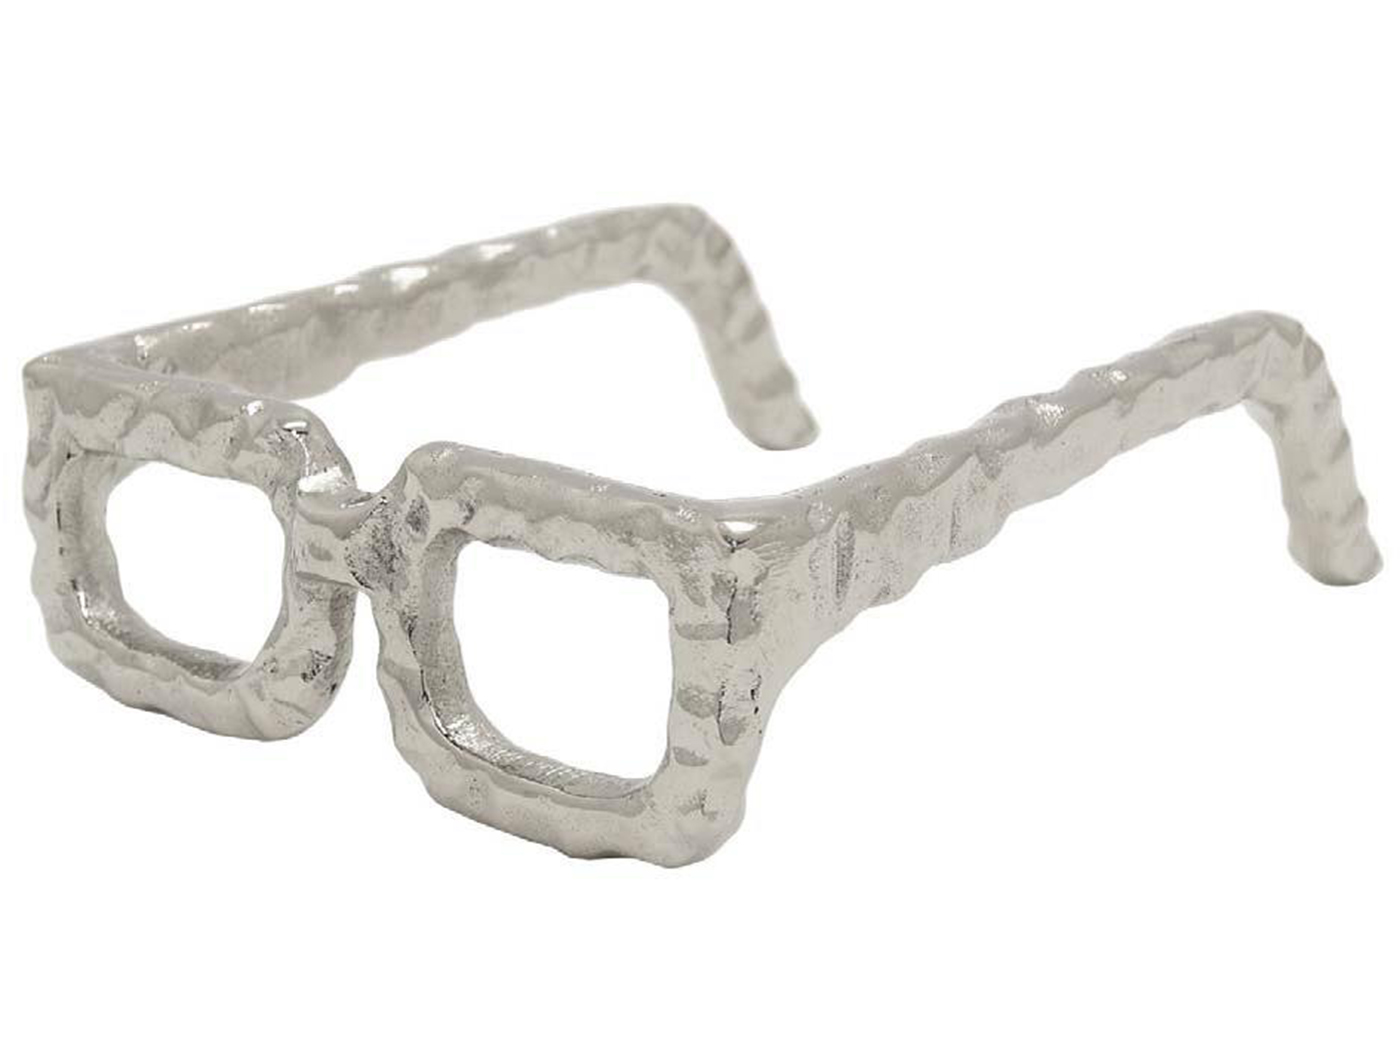 "Silver Squared Framed Eye Glasses Decor 7.5""W x 2""H"